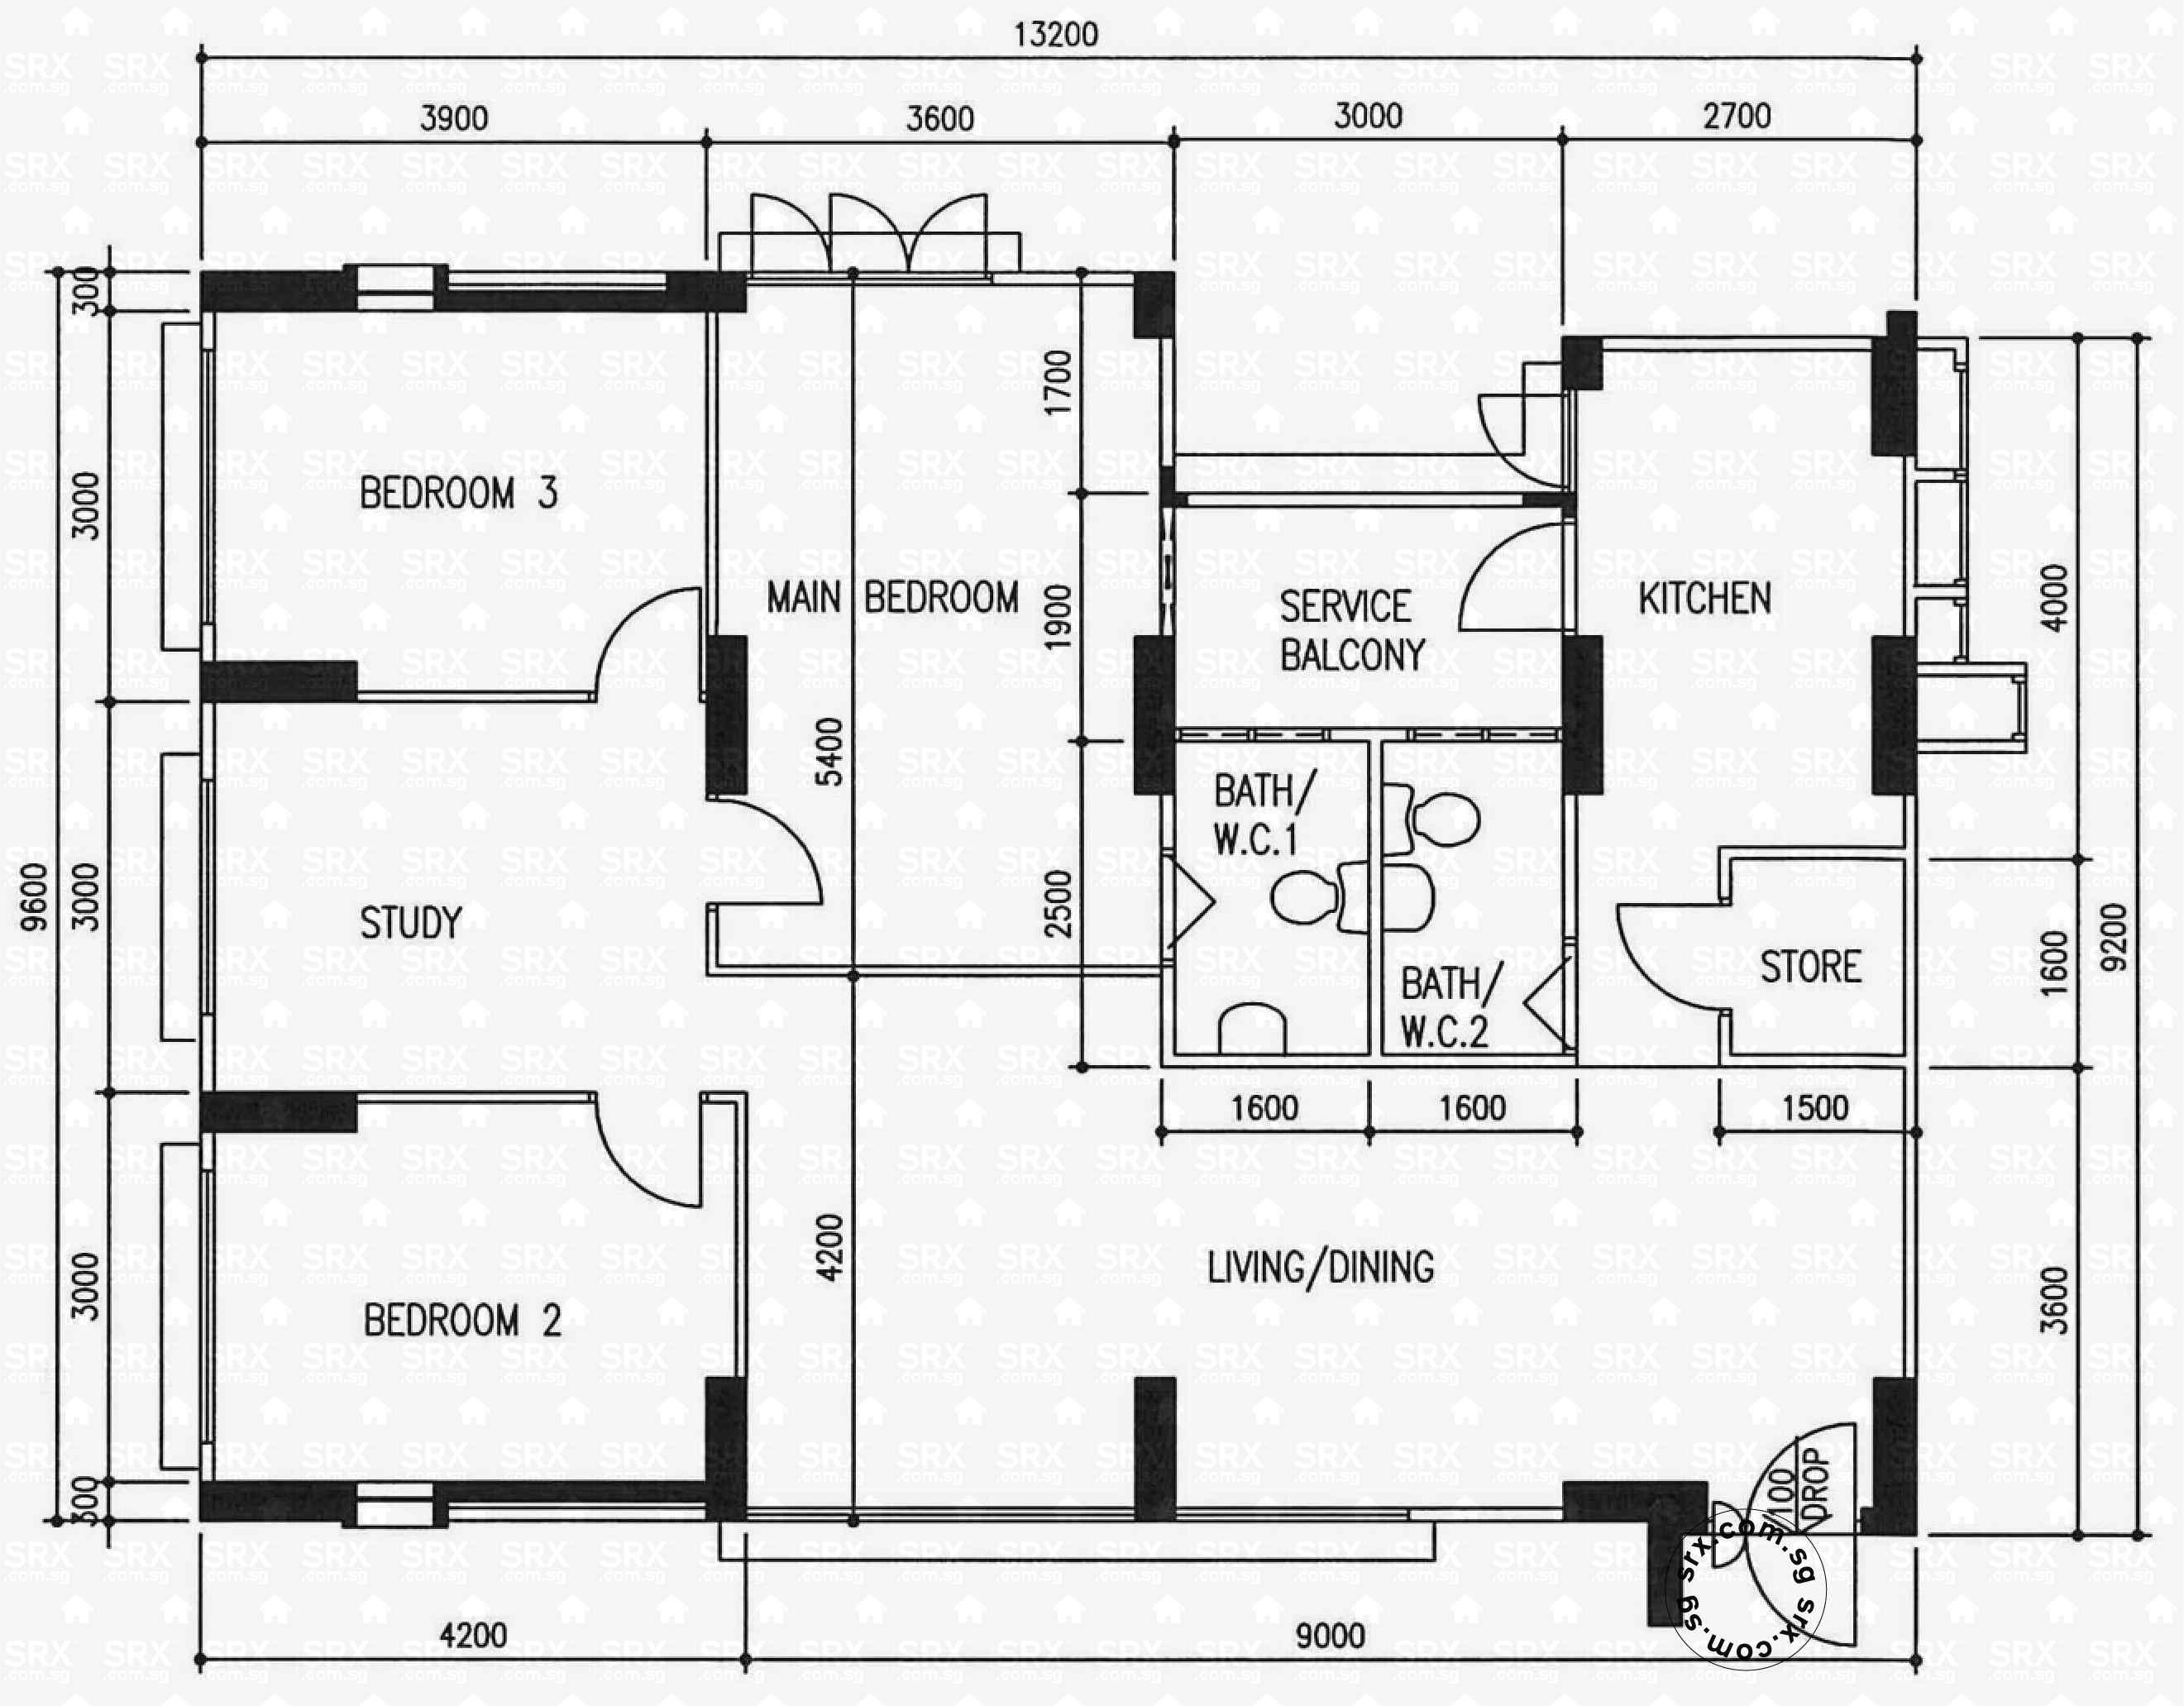 Floor plans for 570 hougang street 51 s 530570 hdb for Plan 51